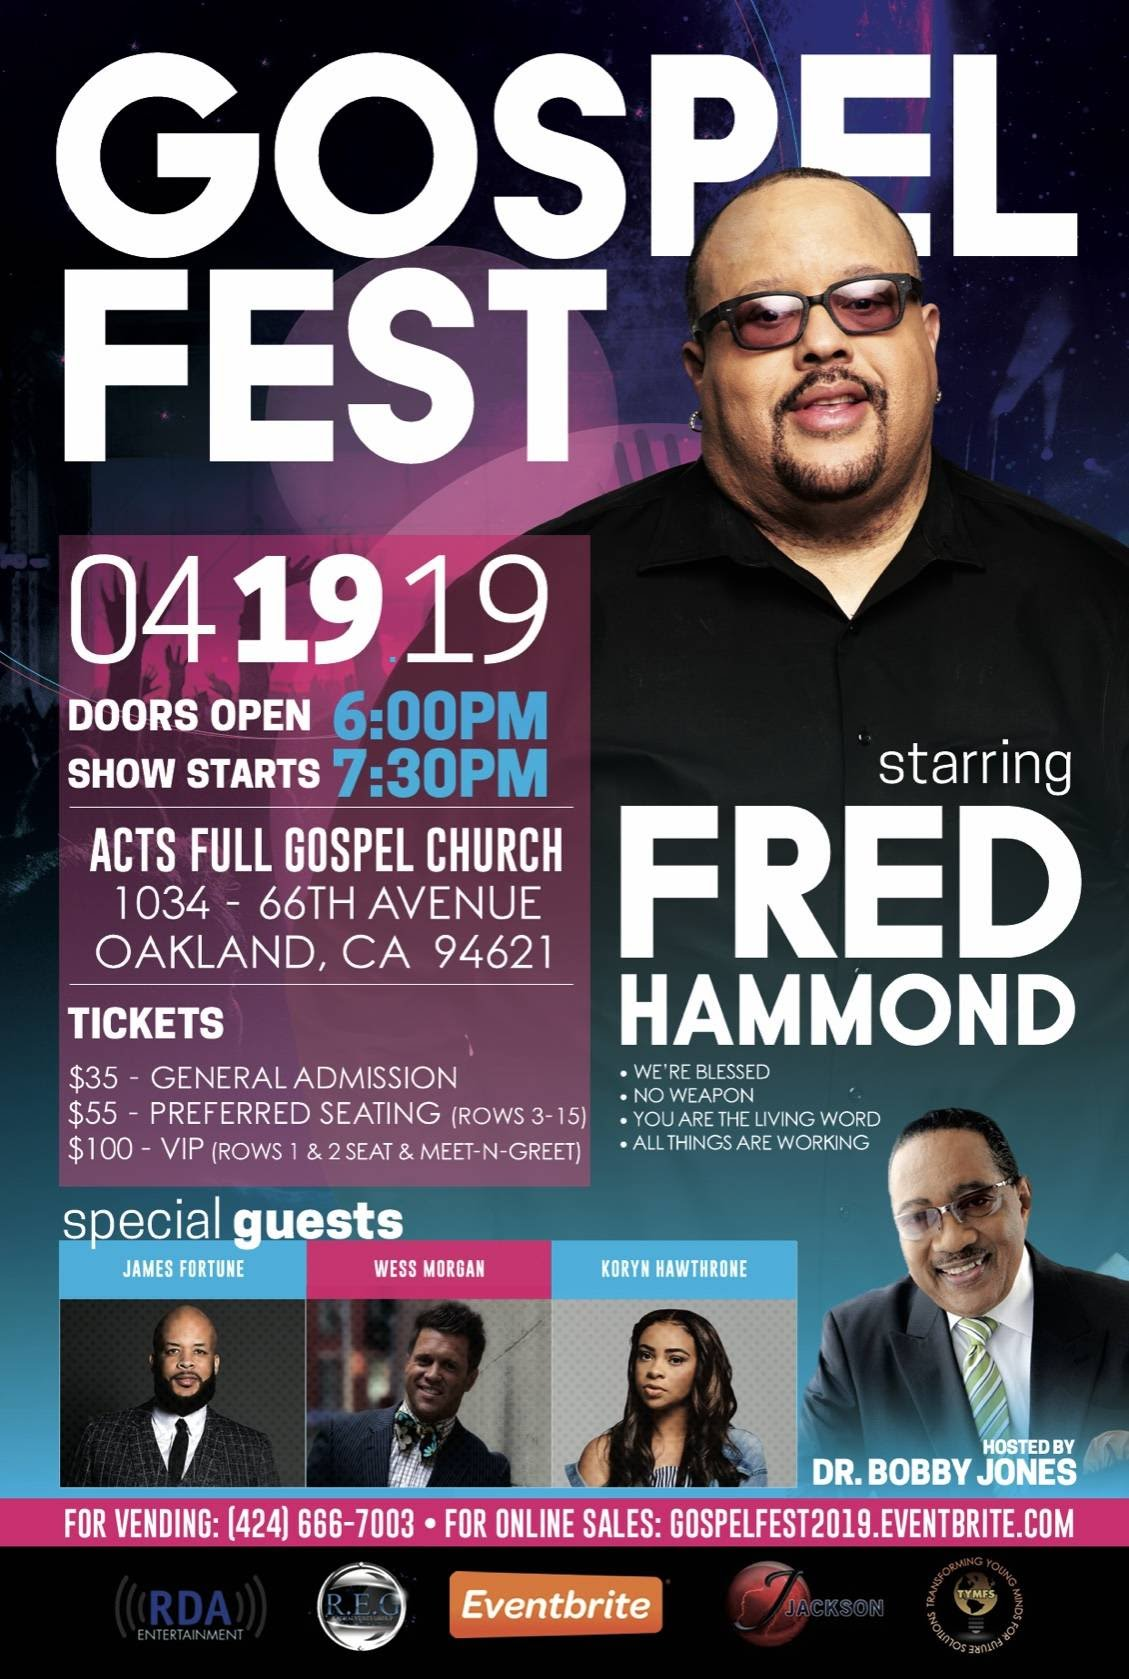 Fred Hammond James Fortune Wess Morgan Gospel Fest 2019